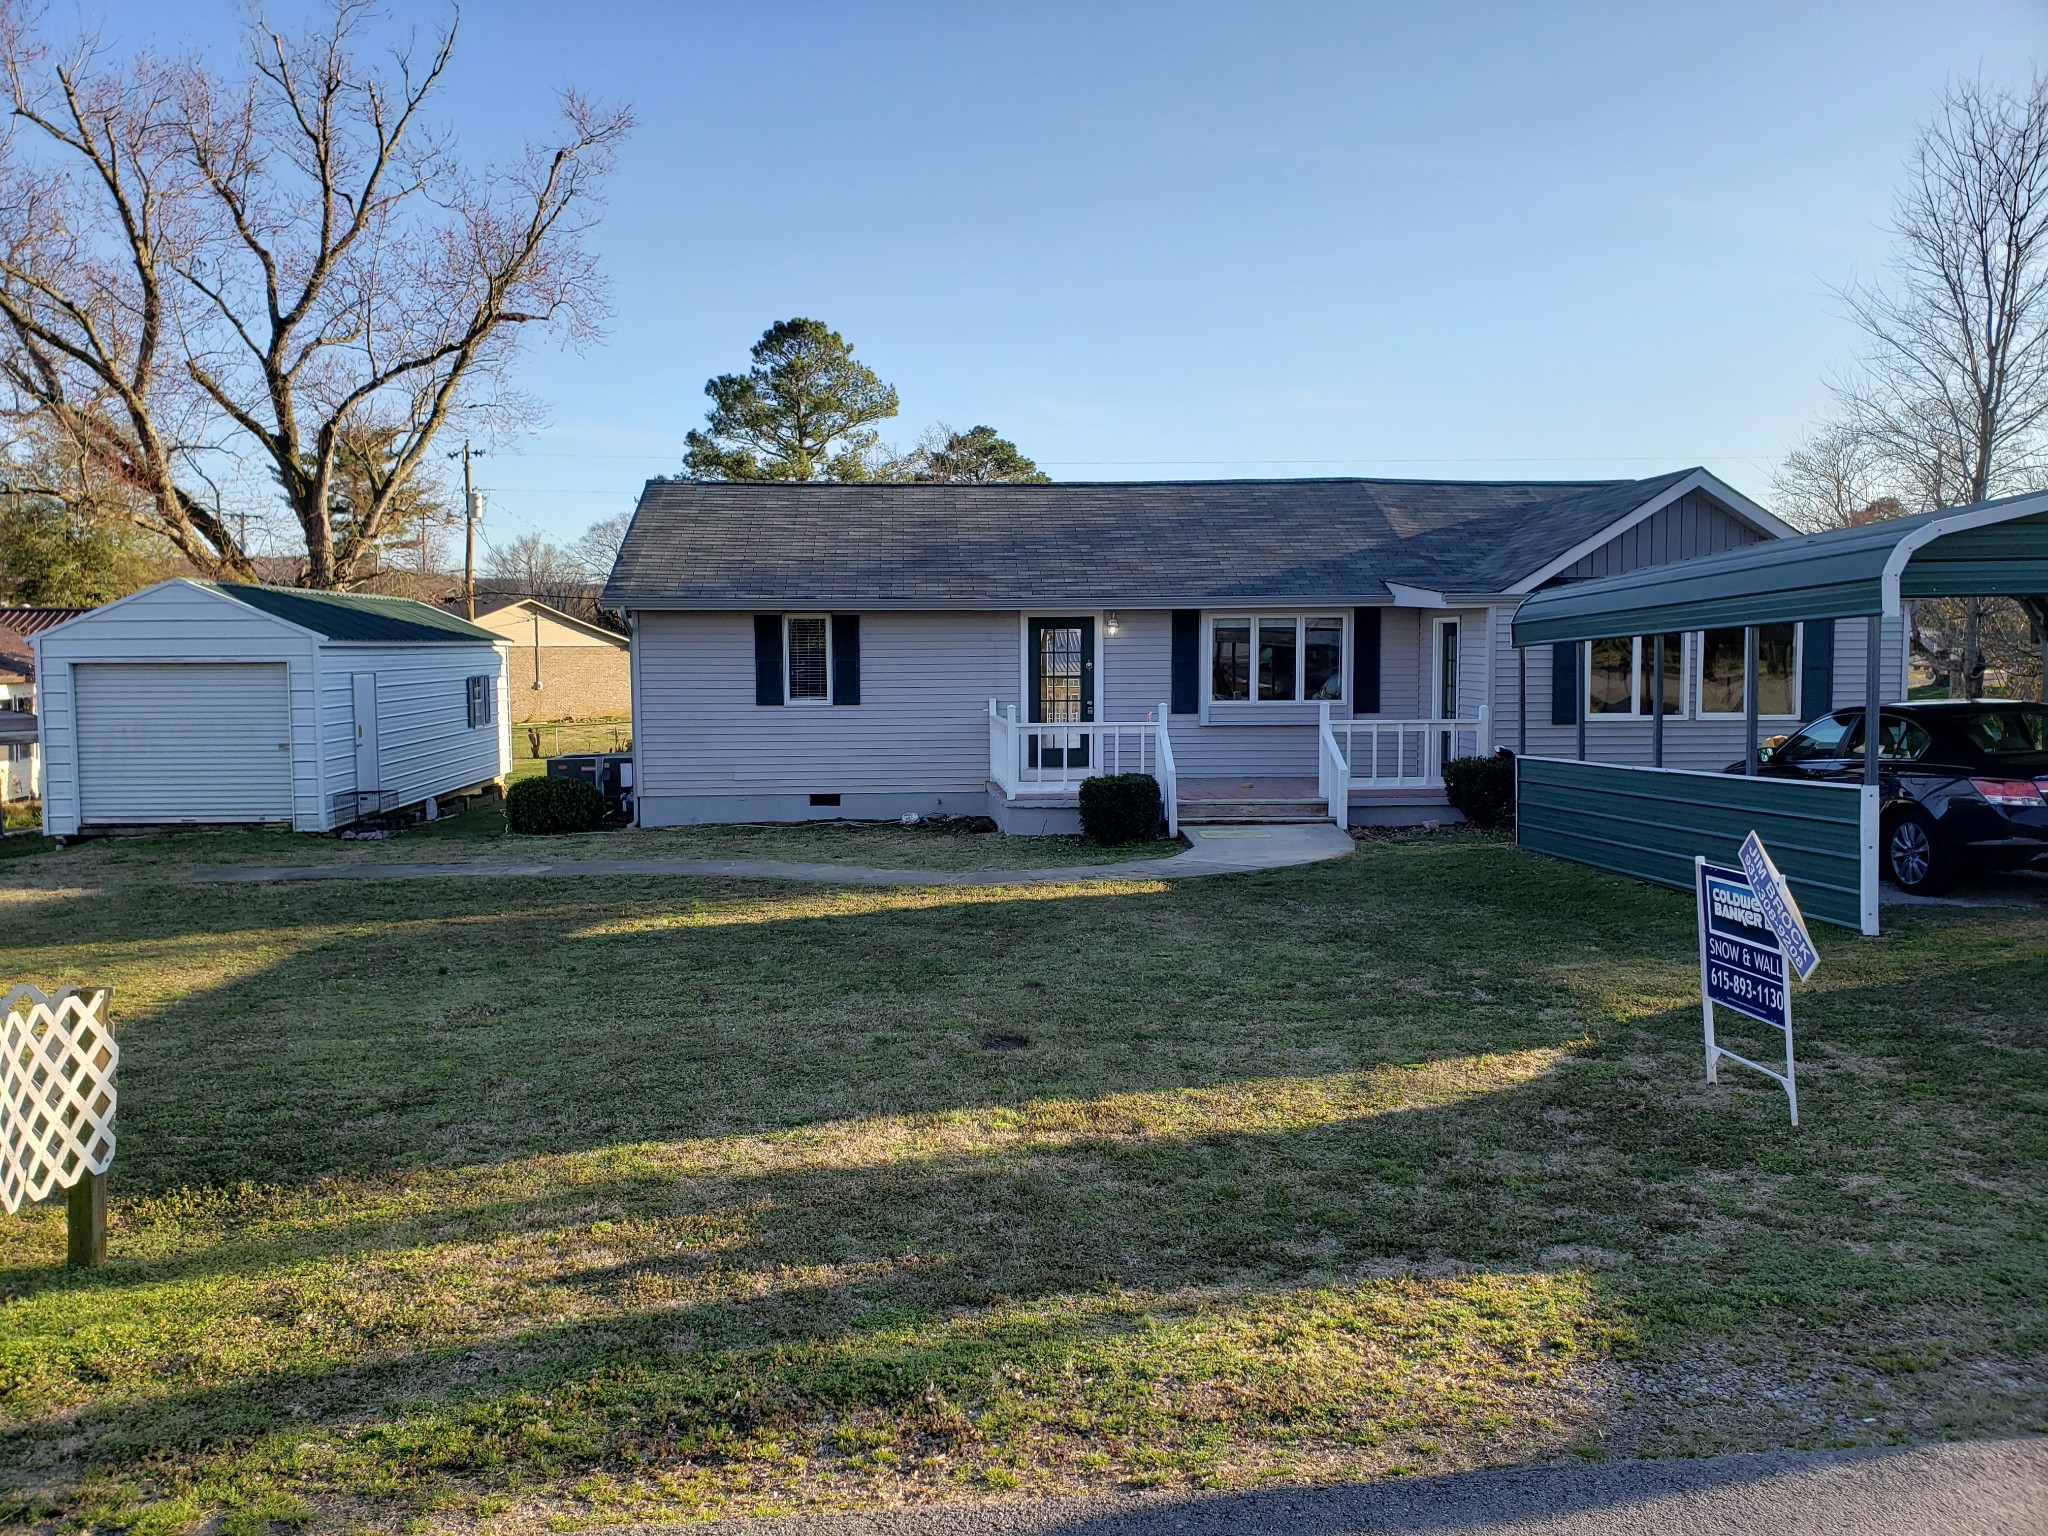 203 Hines St, Cowan, TN 37318 - Cowan, TN real estate listing